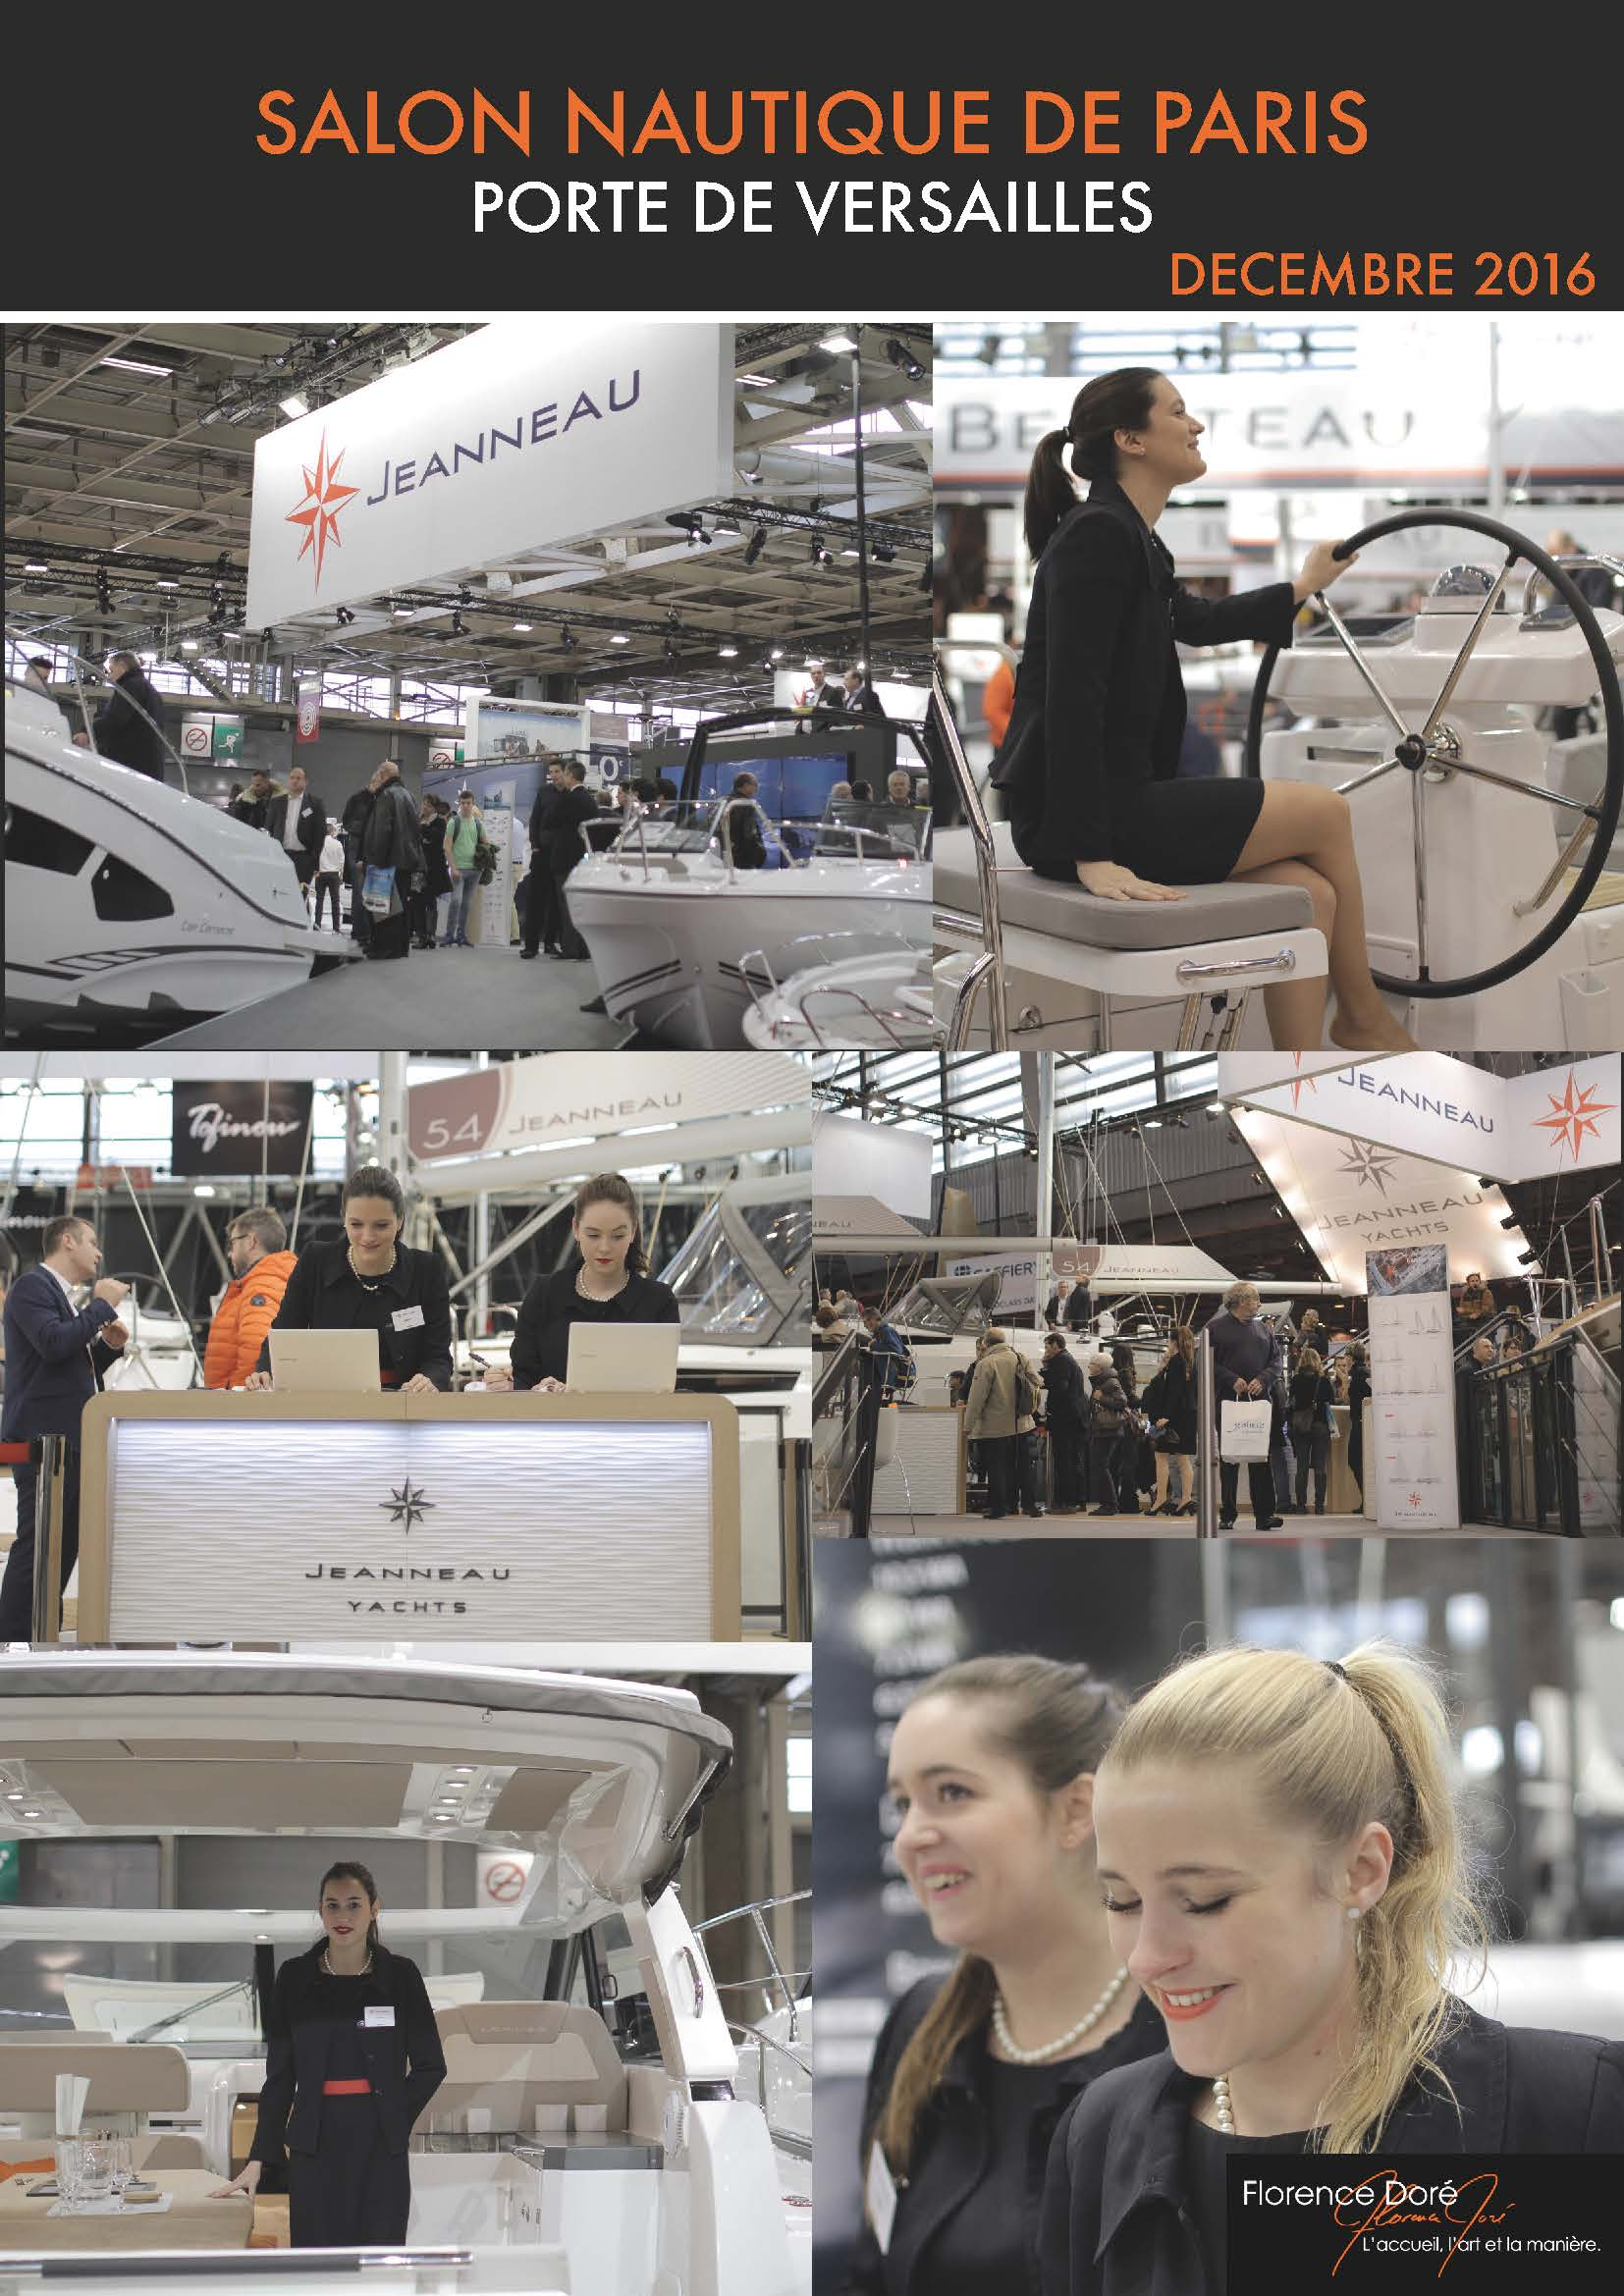 Salon Nautique International De Paris Florence Doré Salon Nautique International De Paris 2016